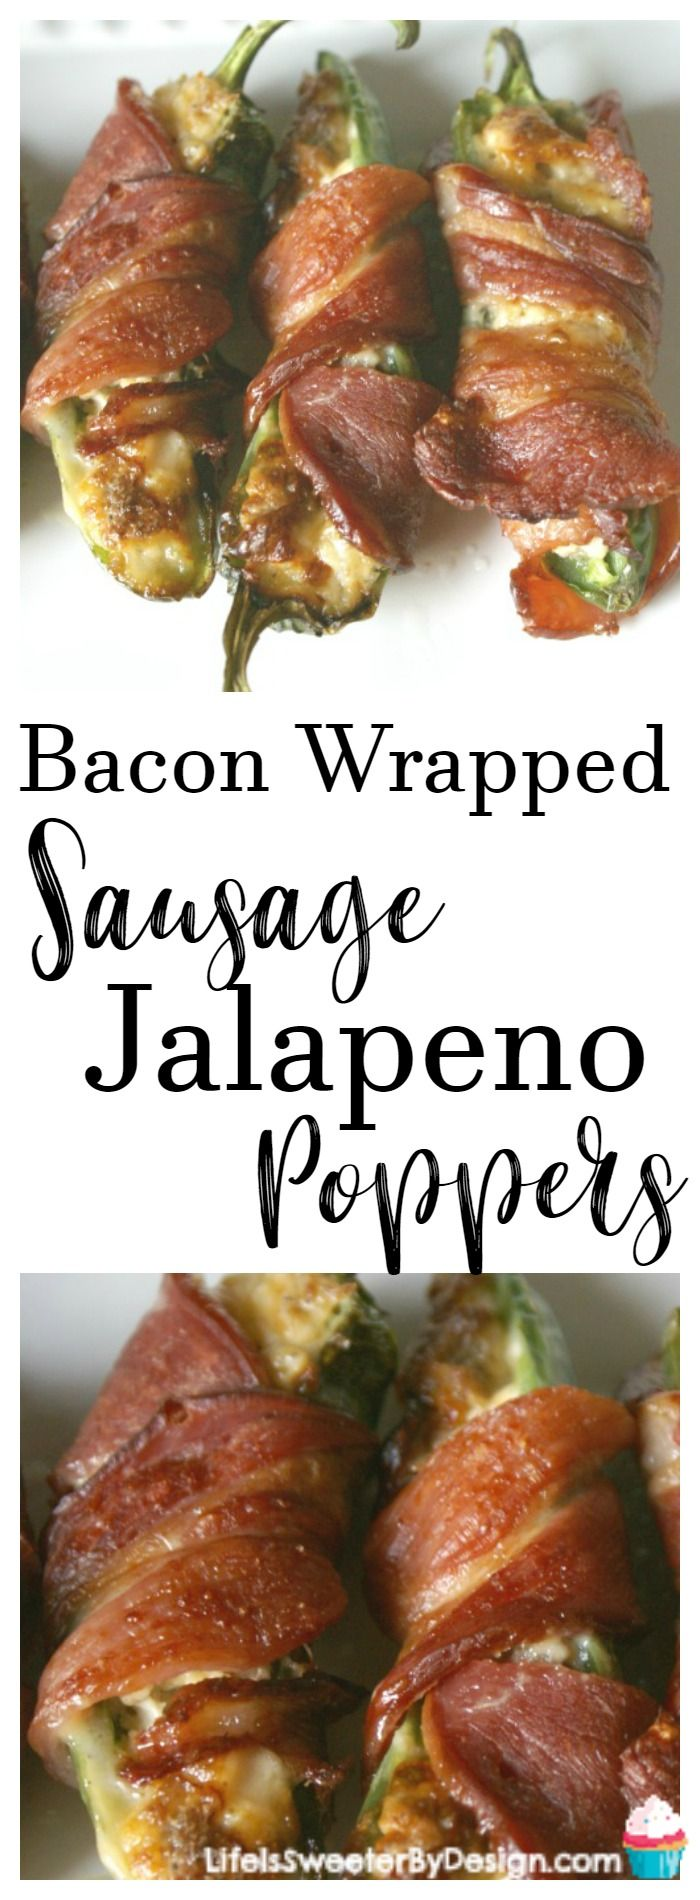 Bacon Wrapped Jalapeno Poppers are amazing and easy to make. These are the perfect appetizers for parties. Bacon is always good in a finger food. Plus these are quick to make in the NuWave Oven.